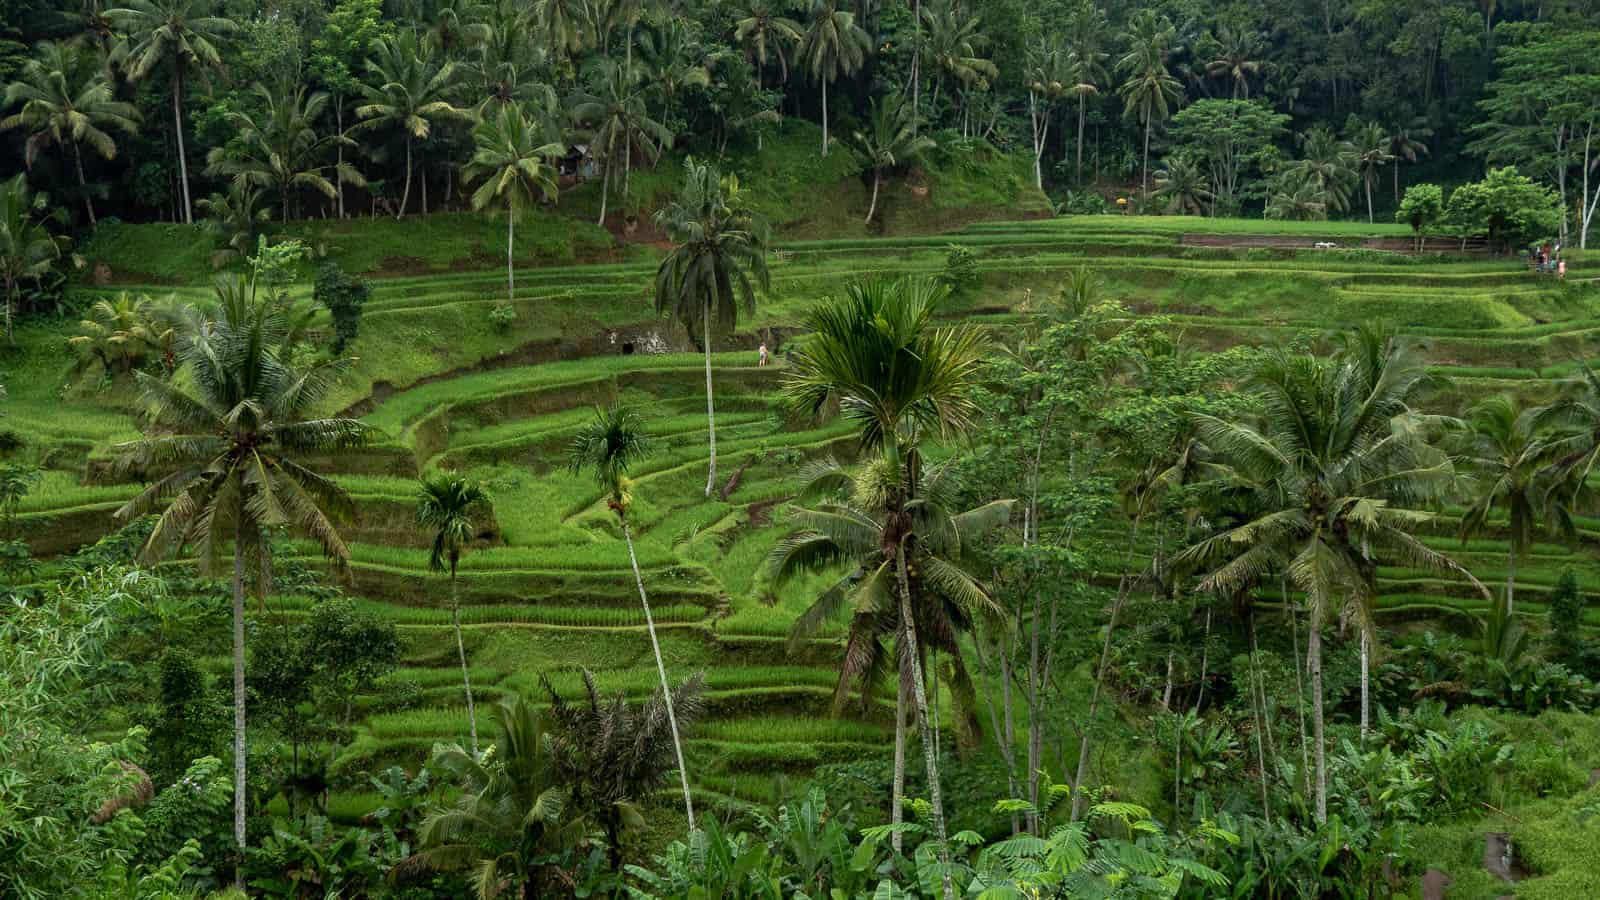 Tegalalang Rice Terrace in Bali